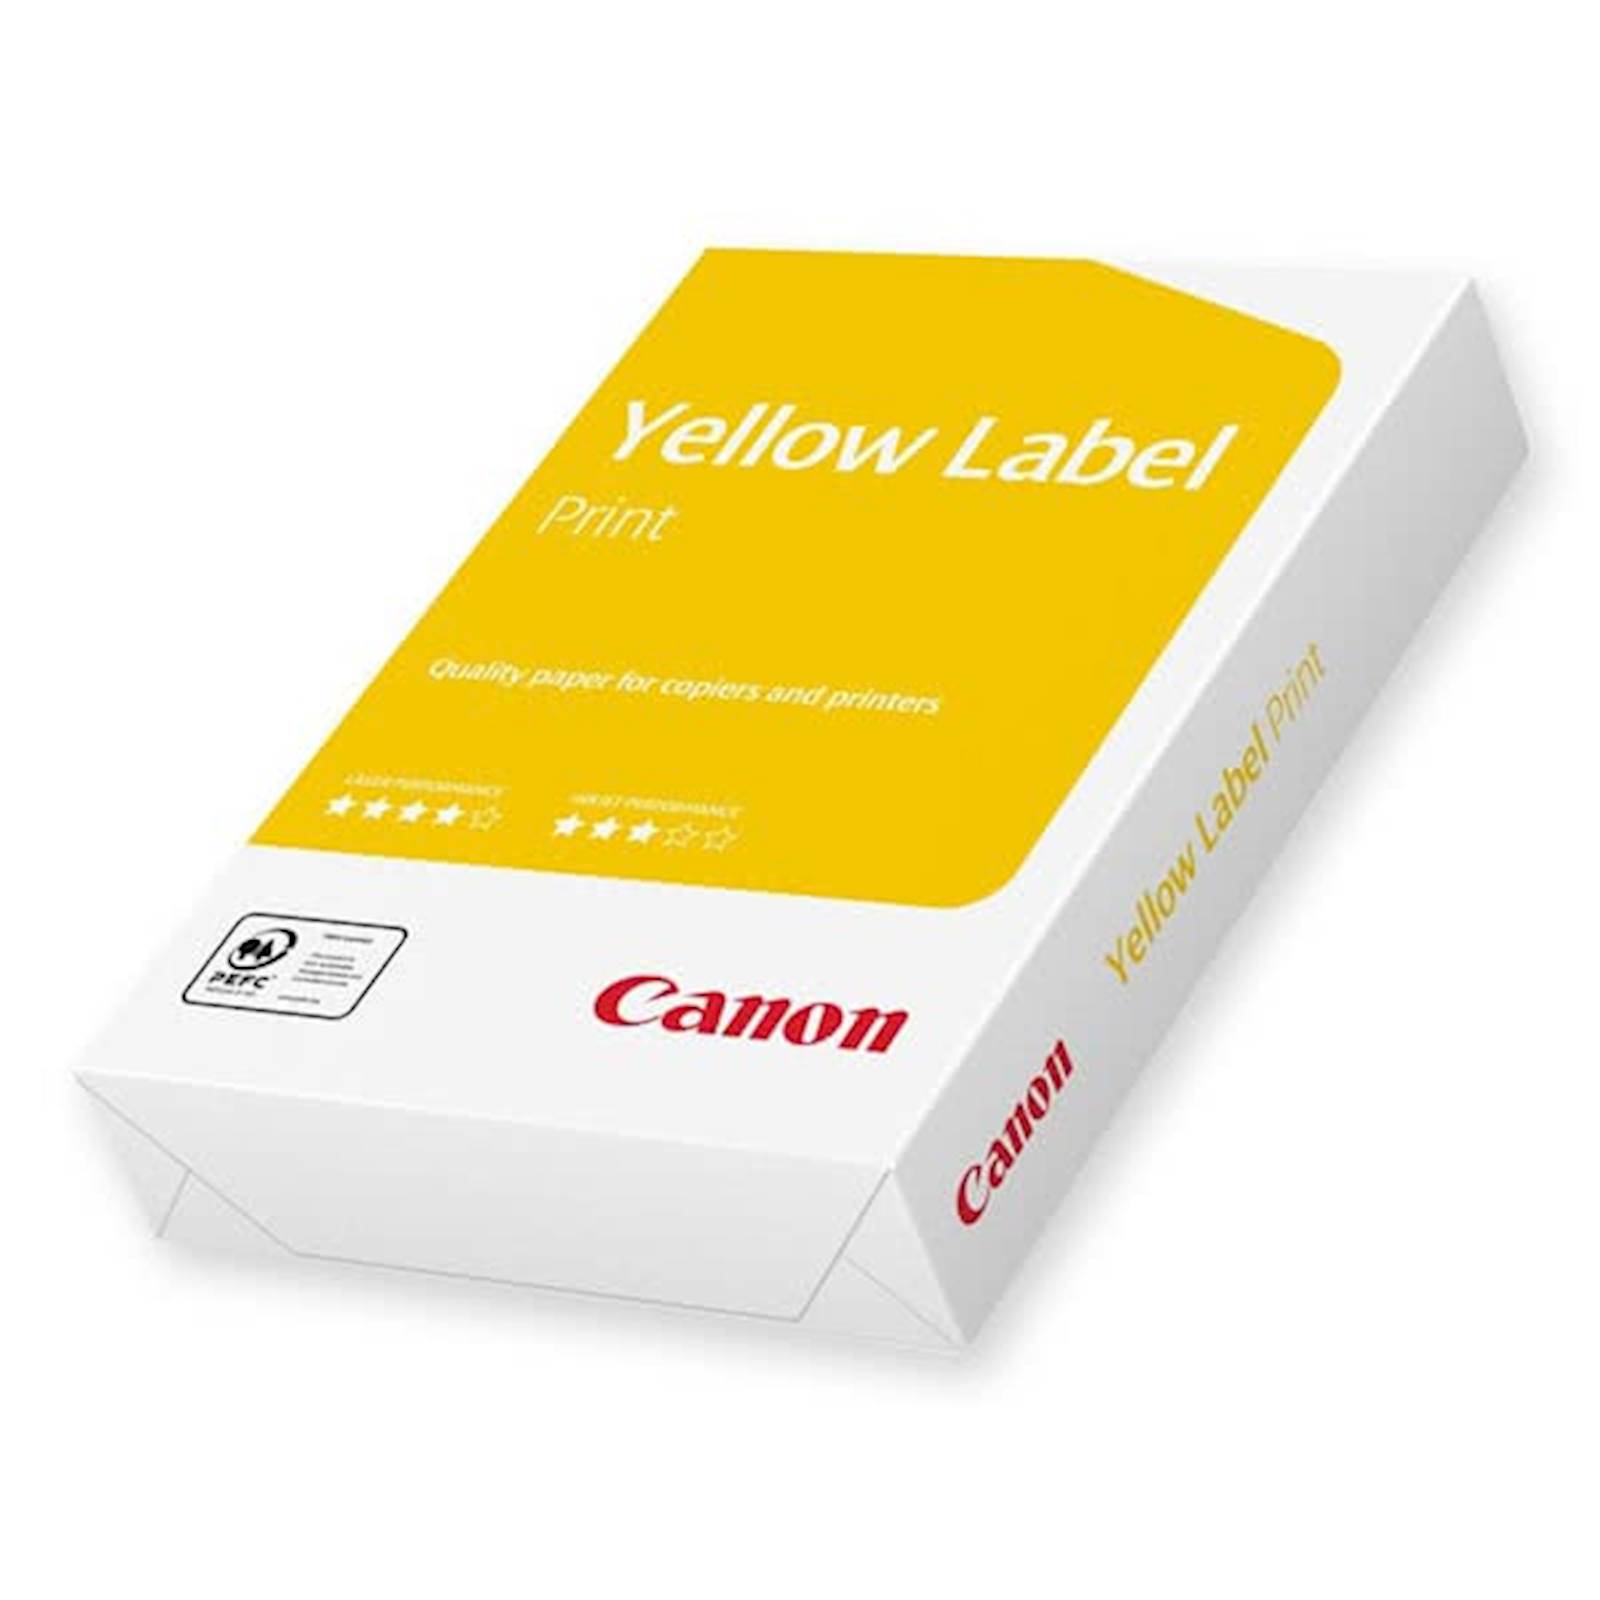 Papir CANON A4 Yellow Label 80g